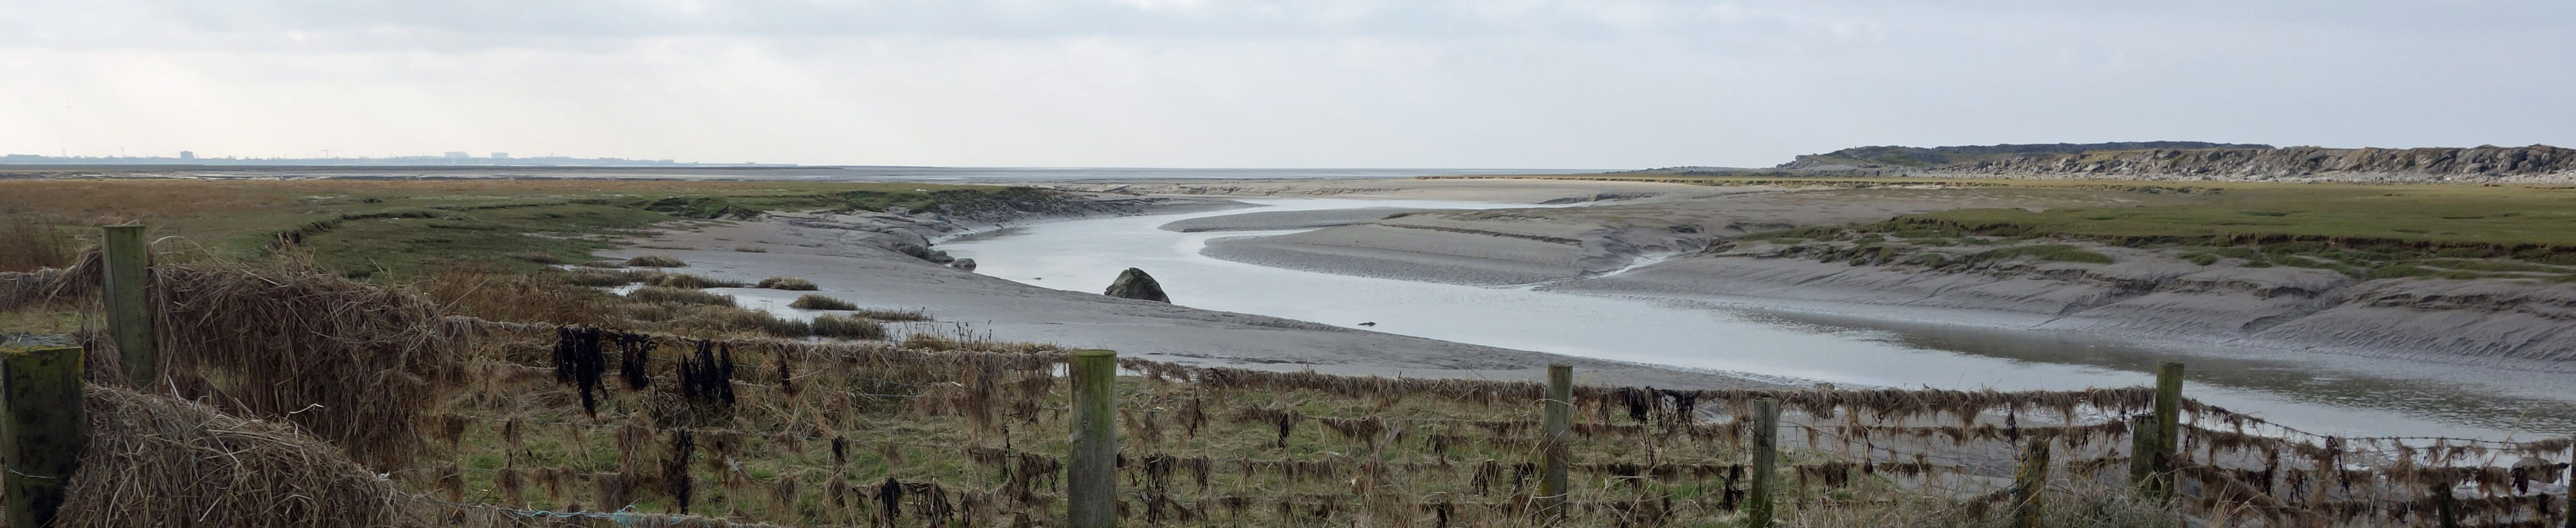 The River Keer estuary